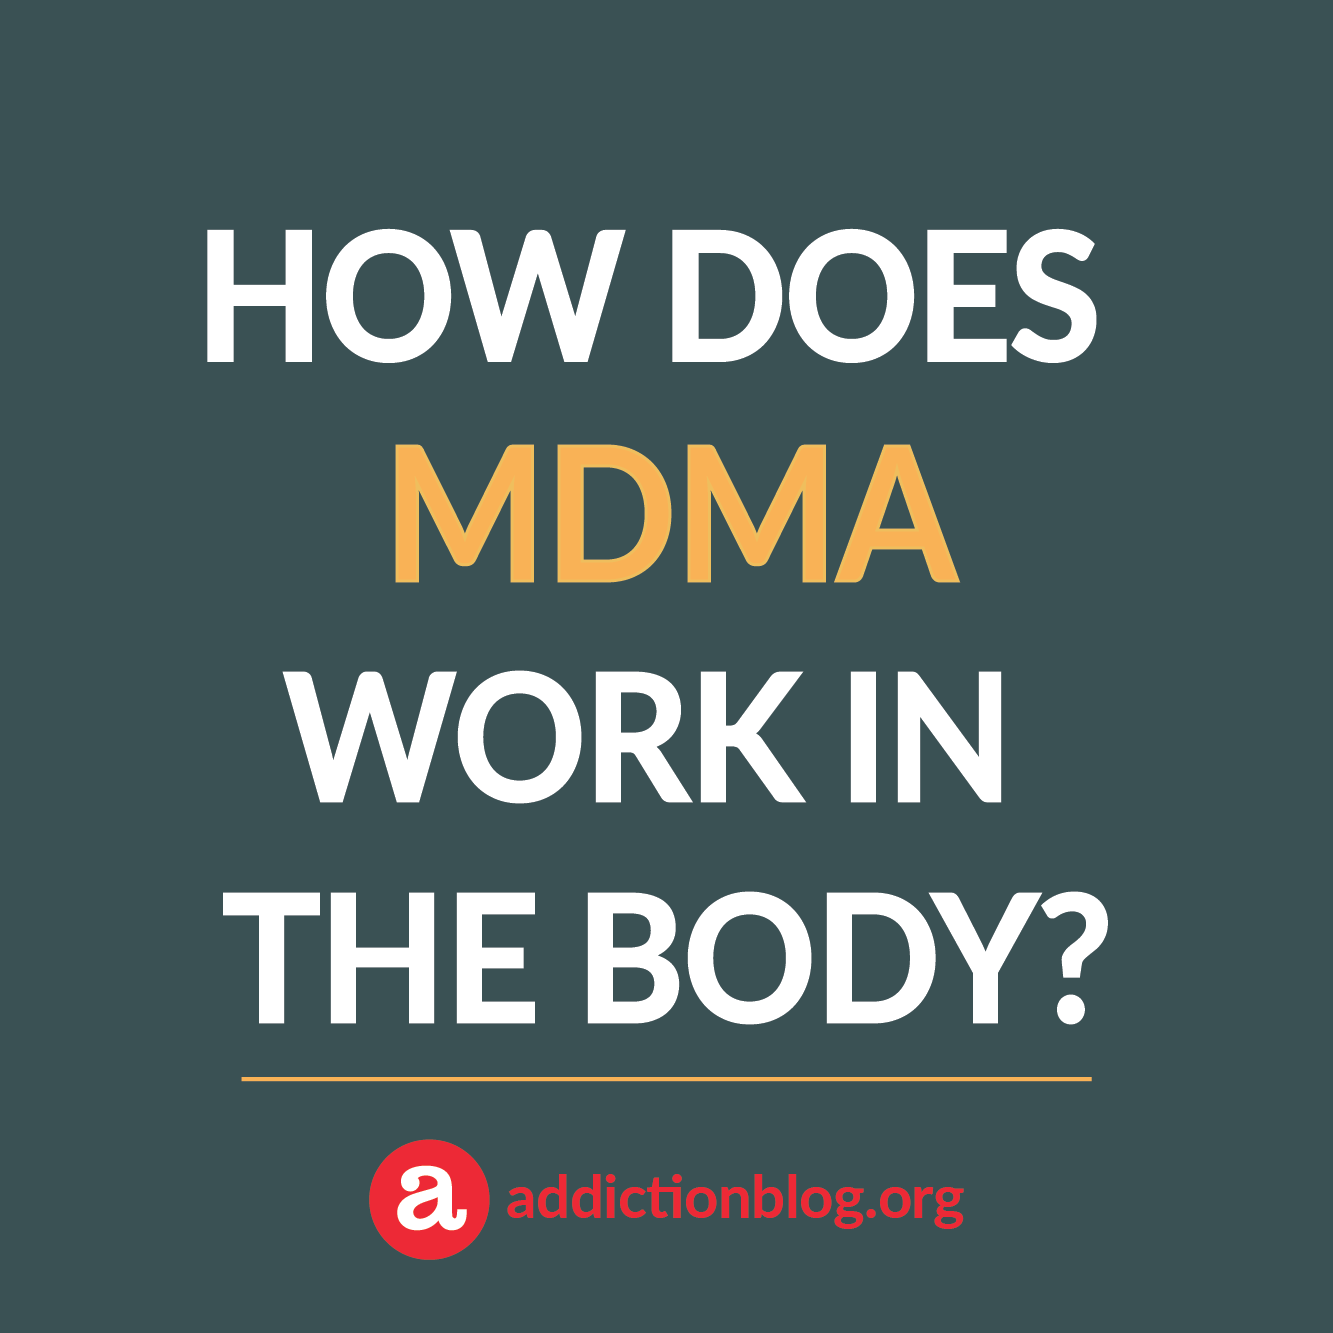 MDMA Metabolism in the Body: How MDMA Affects the Brain (INFOGRAPHIC)